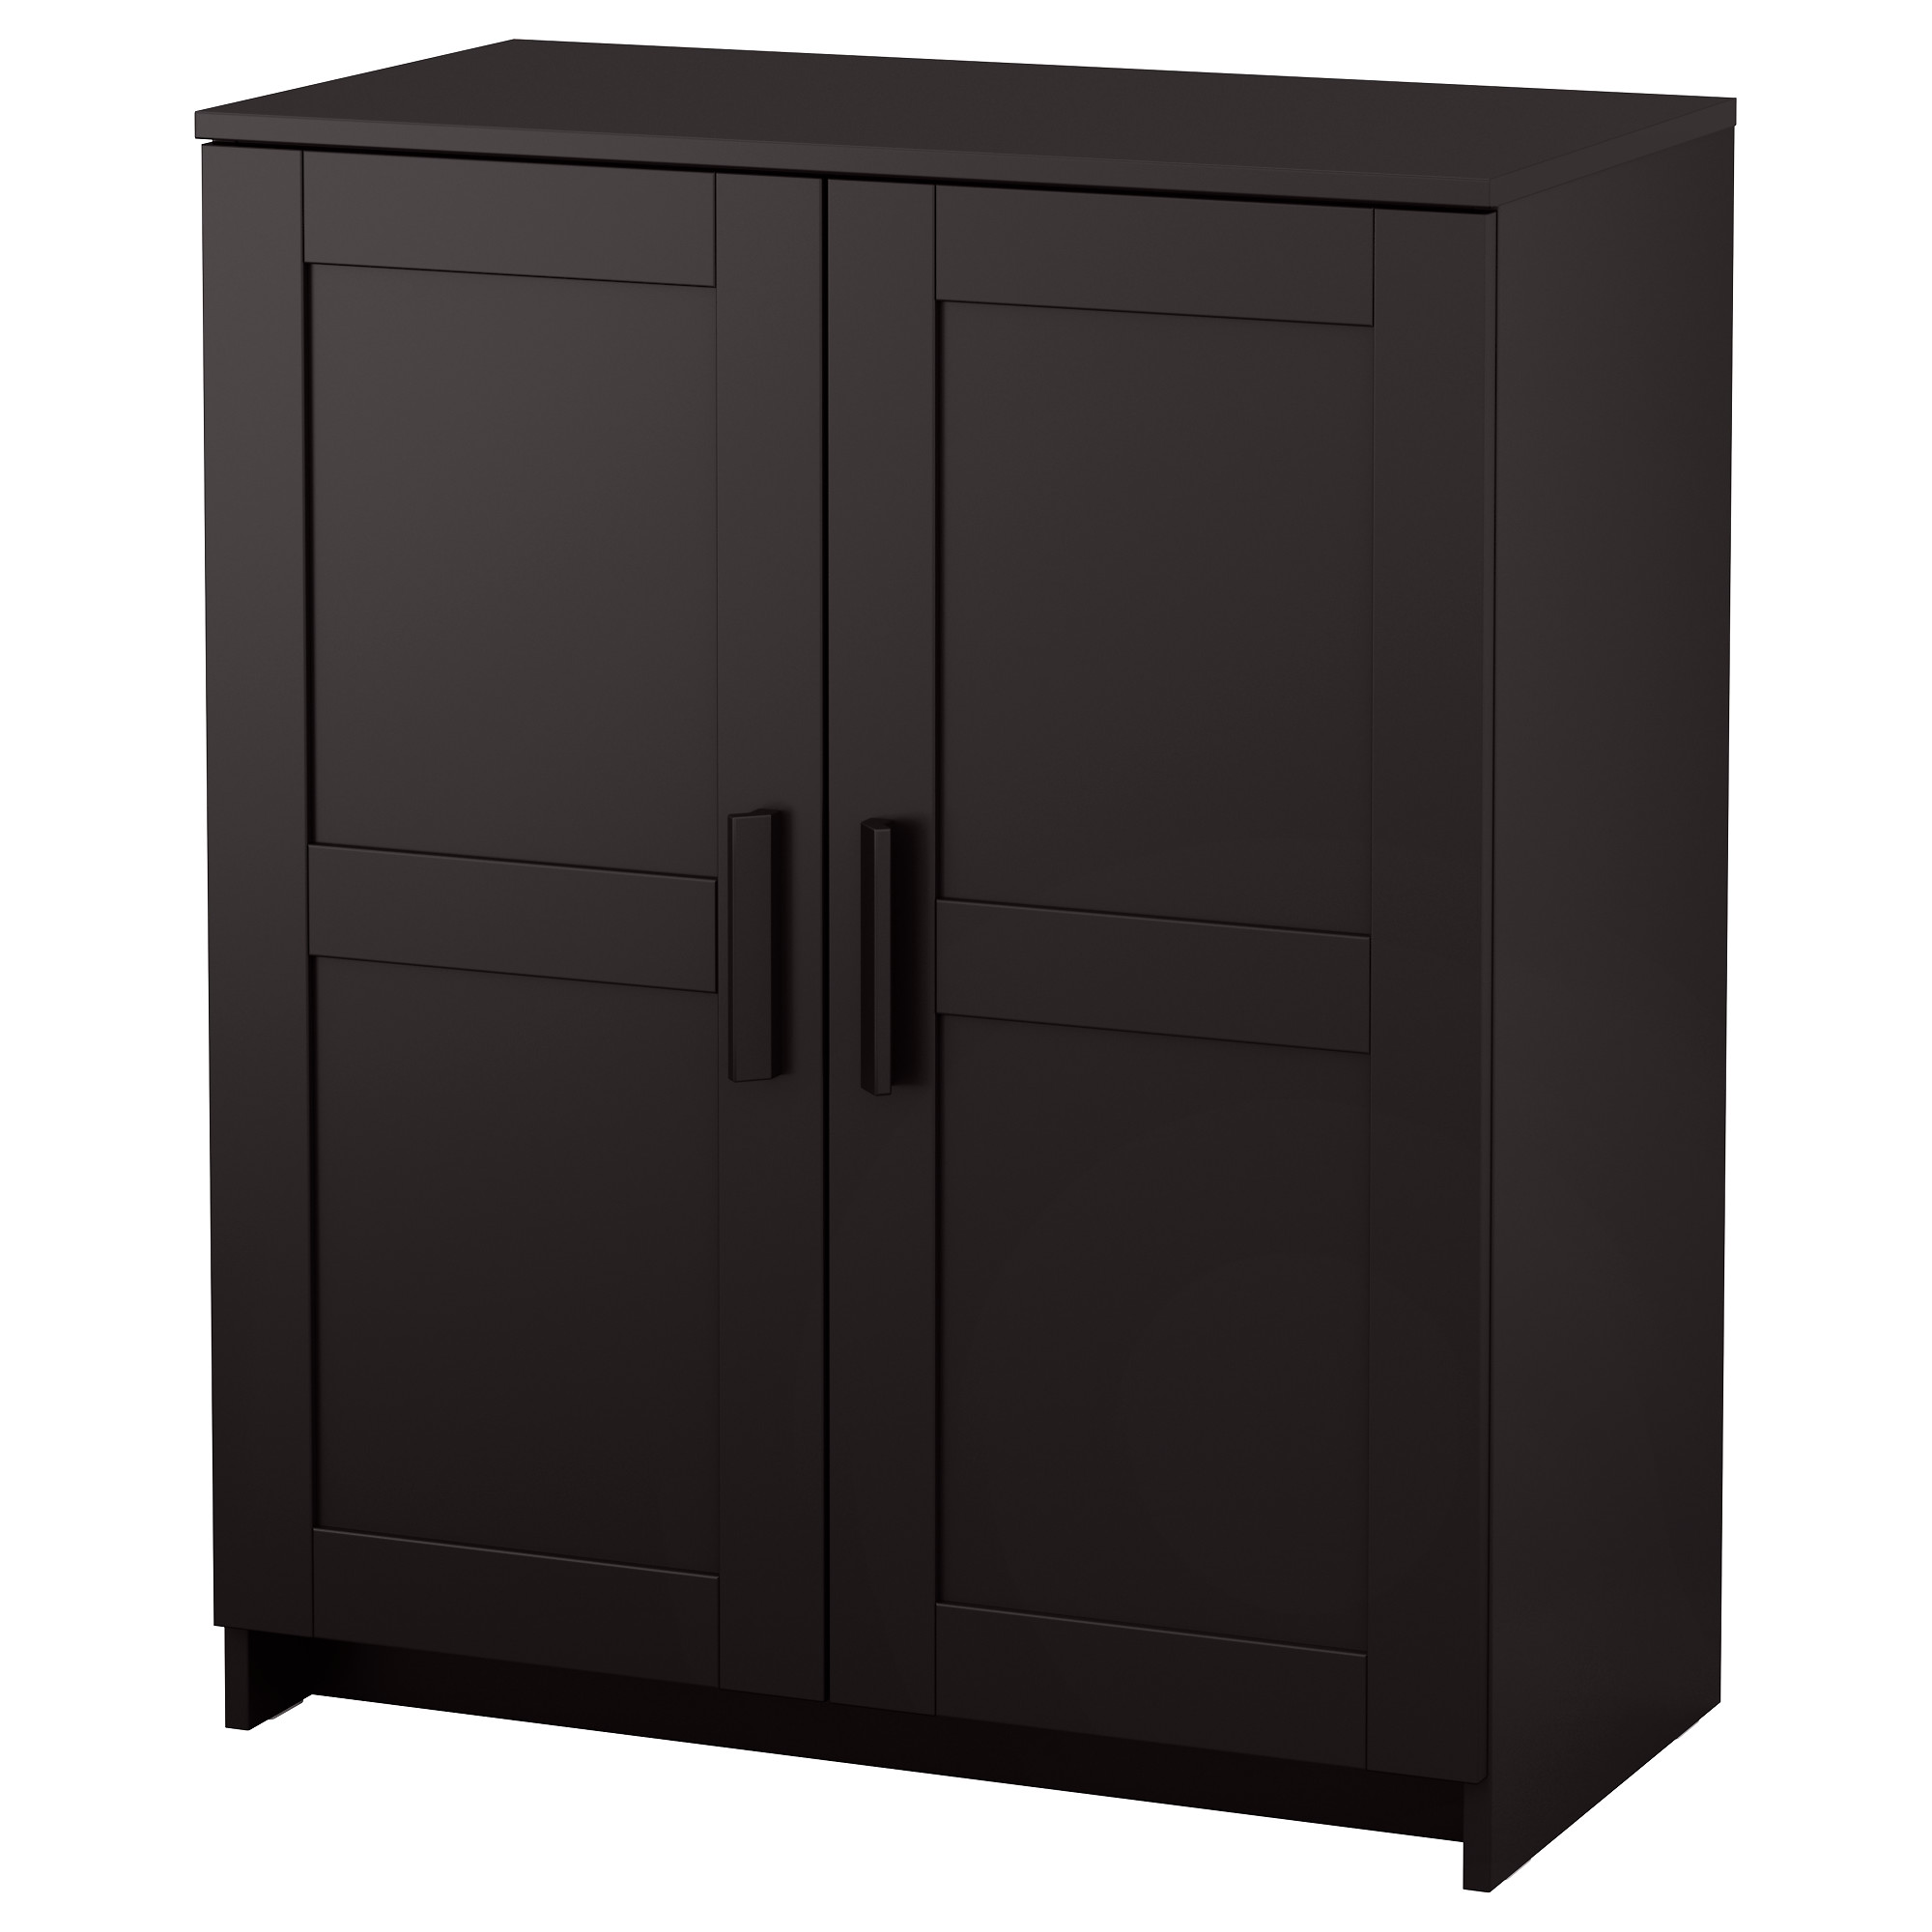 BRIMNES Cabinet With Doors